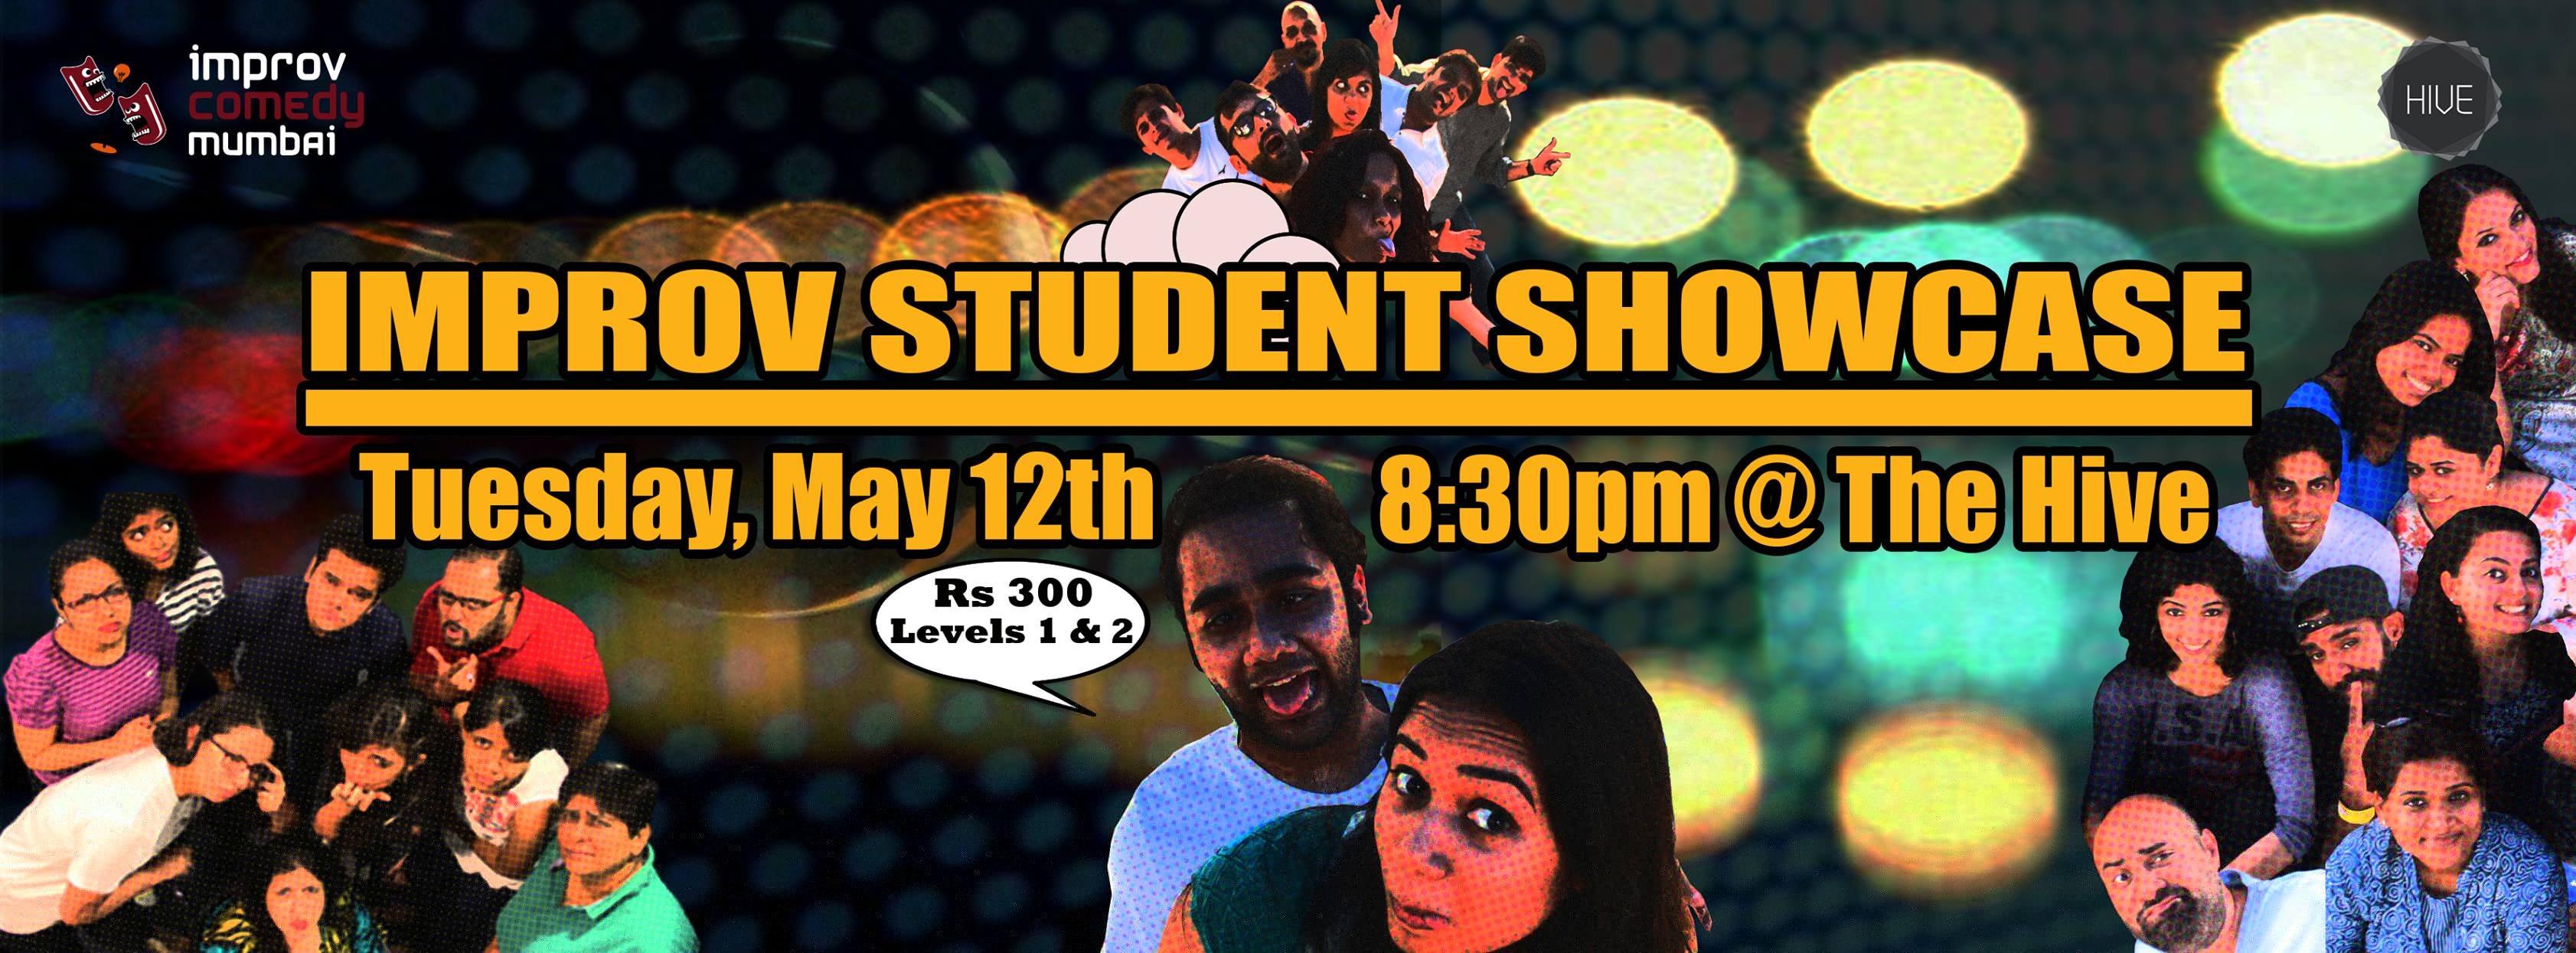 IMPROV COMEDY MUMBAI STUDENT SHOWCASE - Part 1